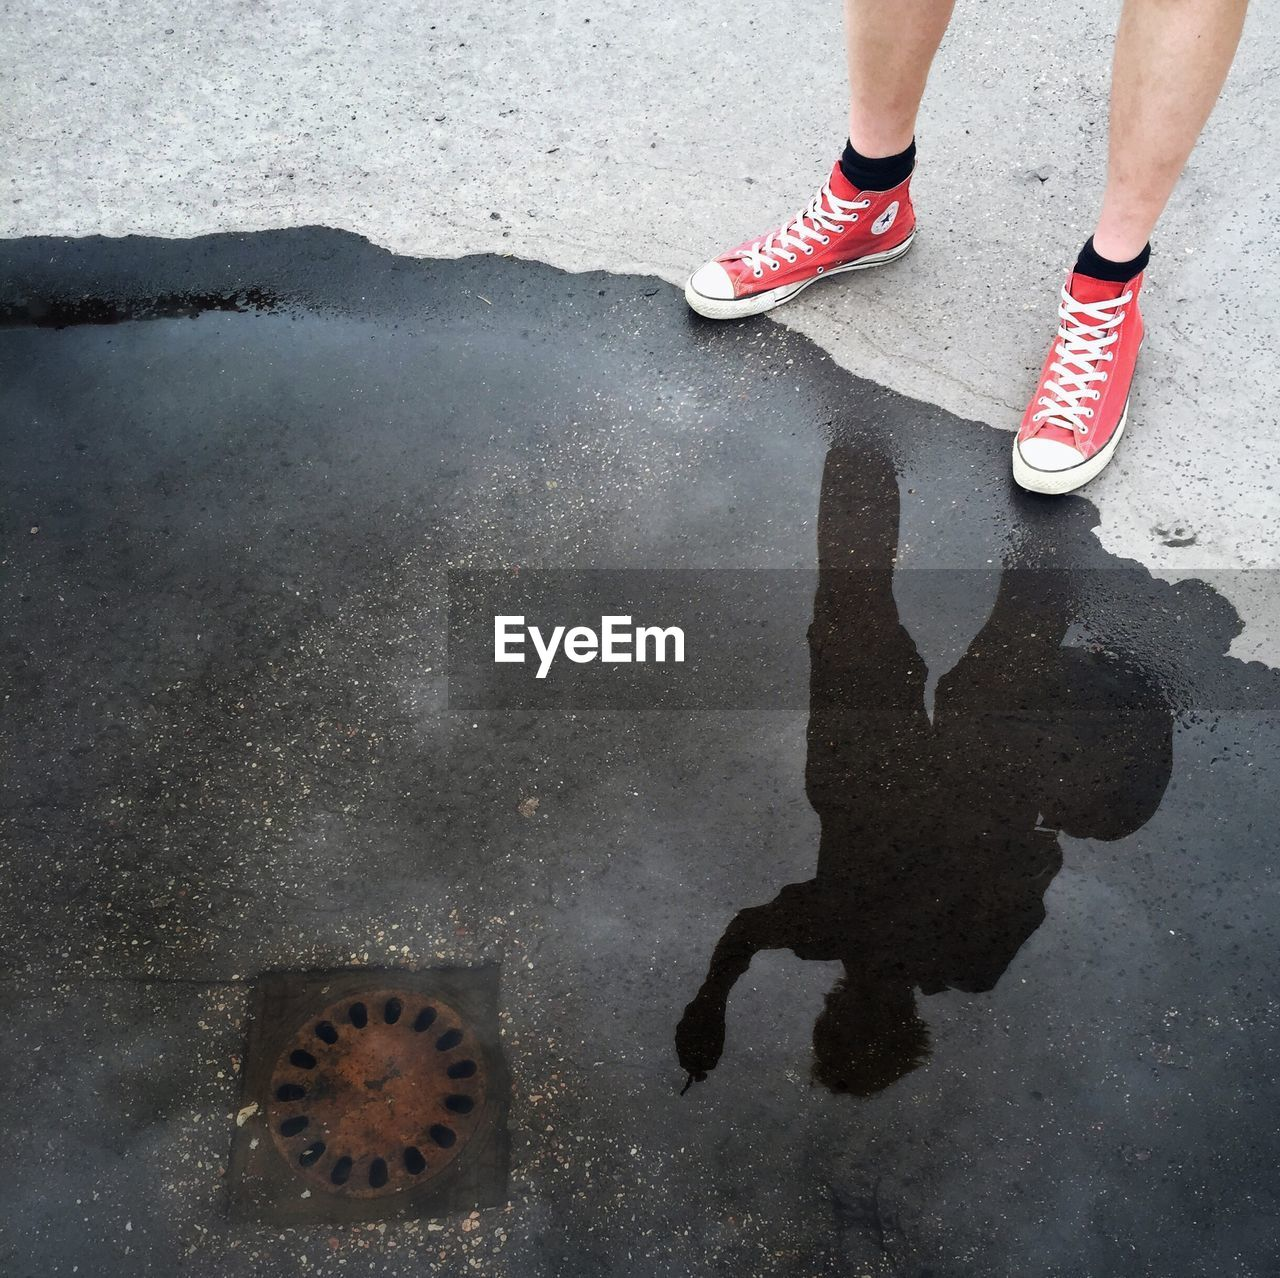 low section, outdoors, shoe, human leg, high angle view, human body part, day, standing, water, one person, puddle, close-up, people, adult